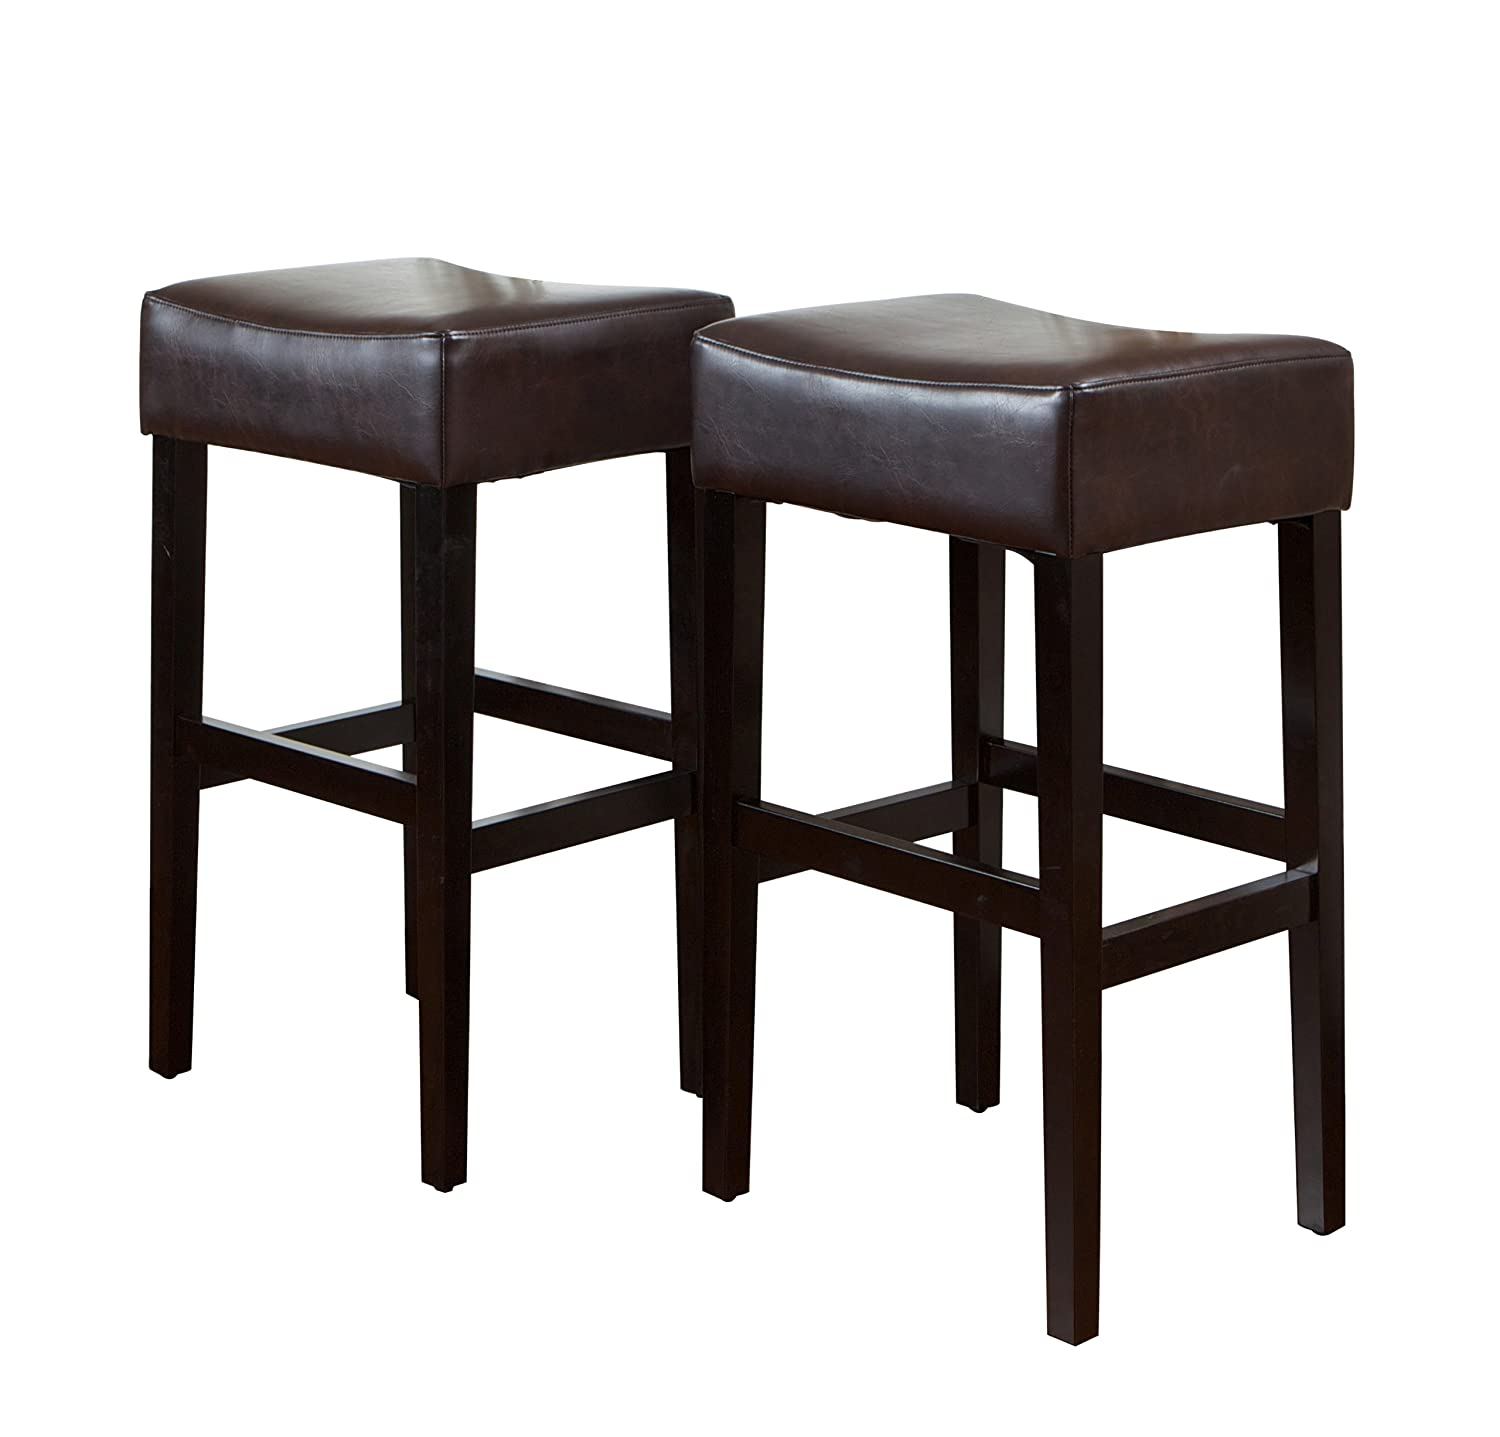 Amazon.com Best Selling Classic Brown Leather Backless Barstool 2-Pack Kitchen u0026 Dining  sc 1 st  Amazon.com & Amazon.com: Best Selling Classic Brown Leather Backless Barstool ... islam-shia.org